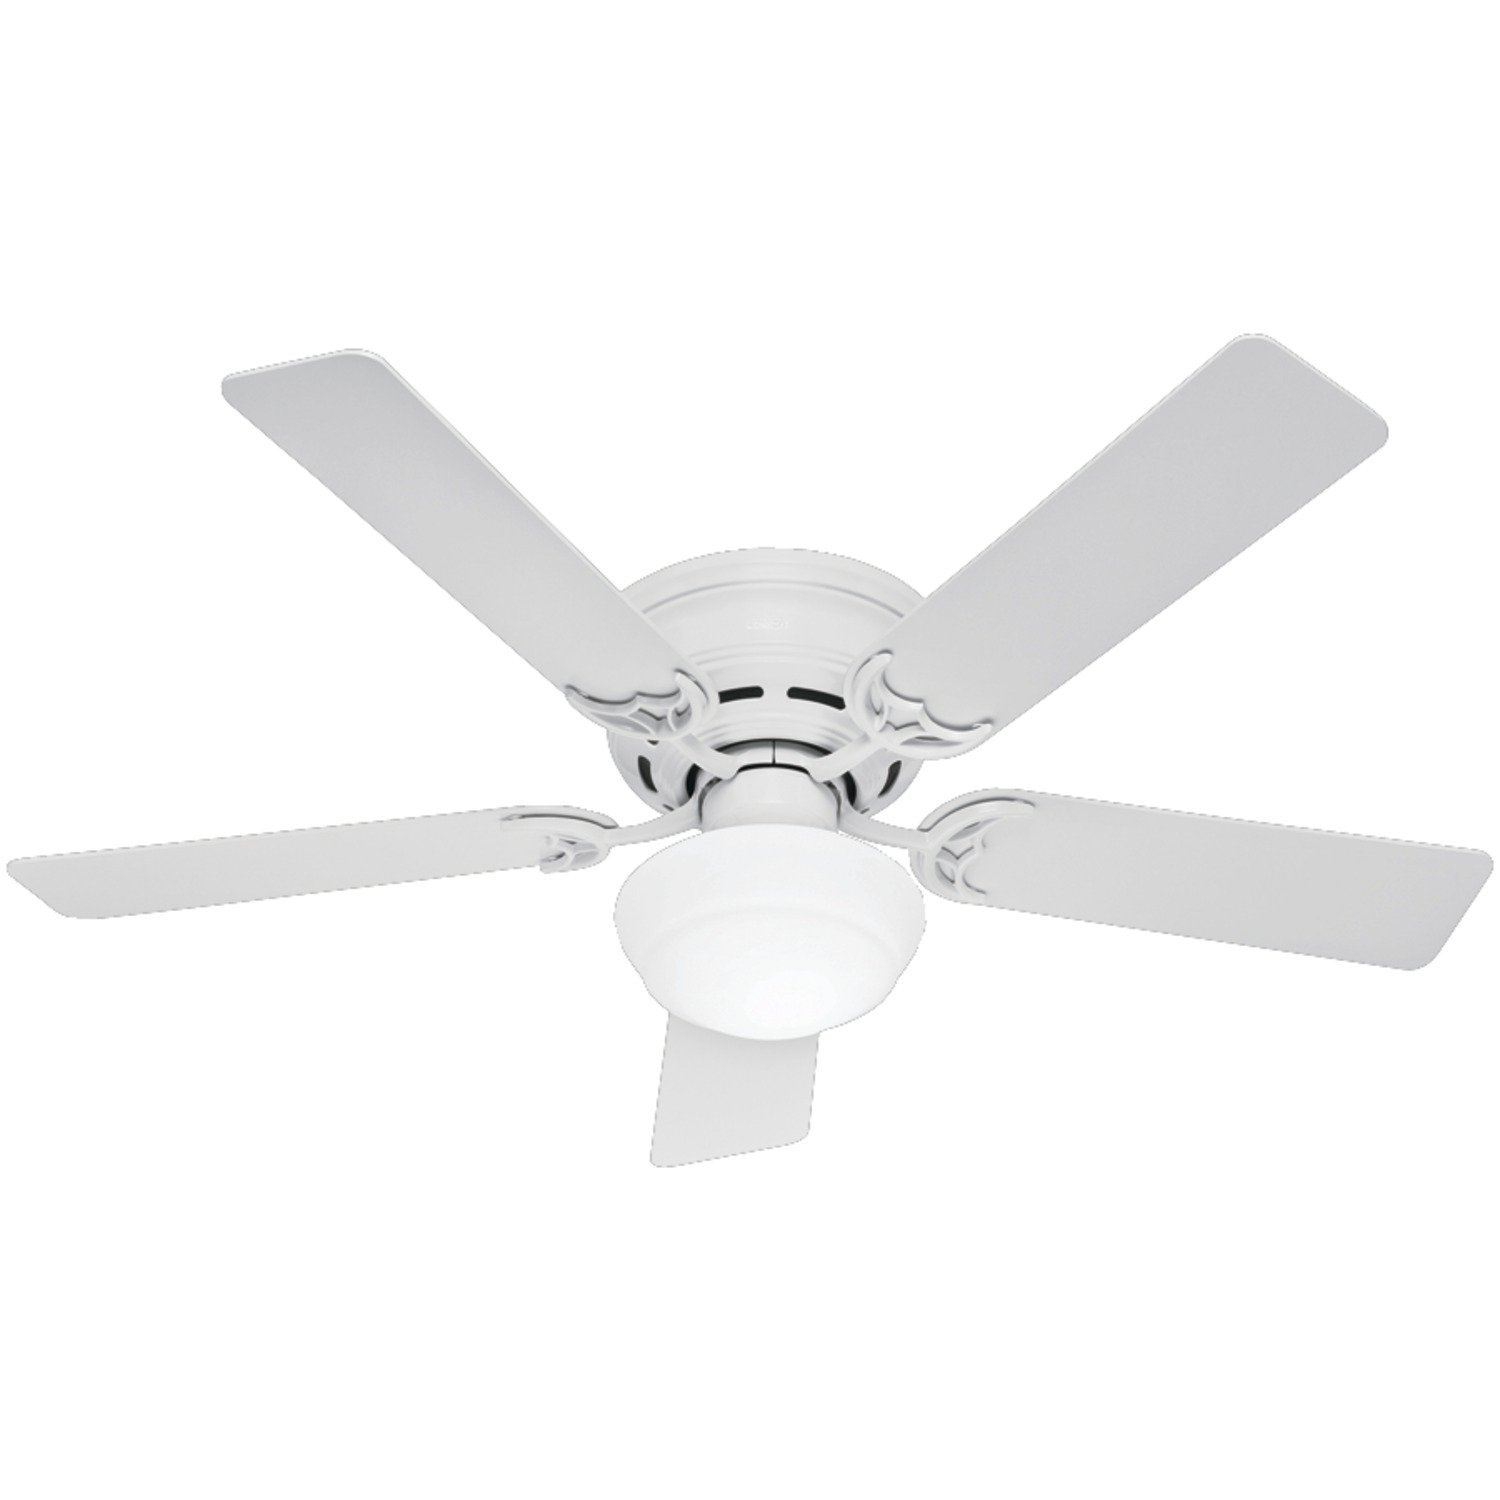 Hunter 53075 Low Profile lll Plus 52-Inch Five Blade Single Light Ceiling Fan with White Blades and Frosted Glass Globe, White